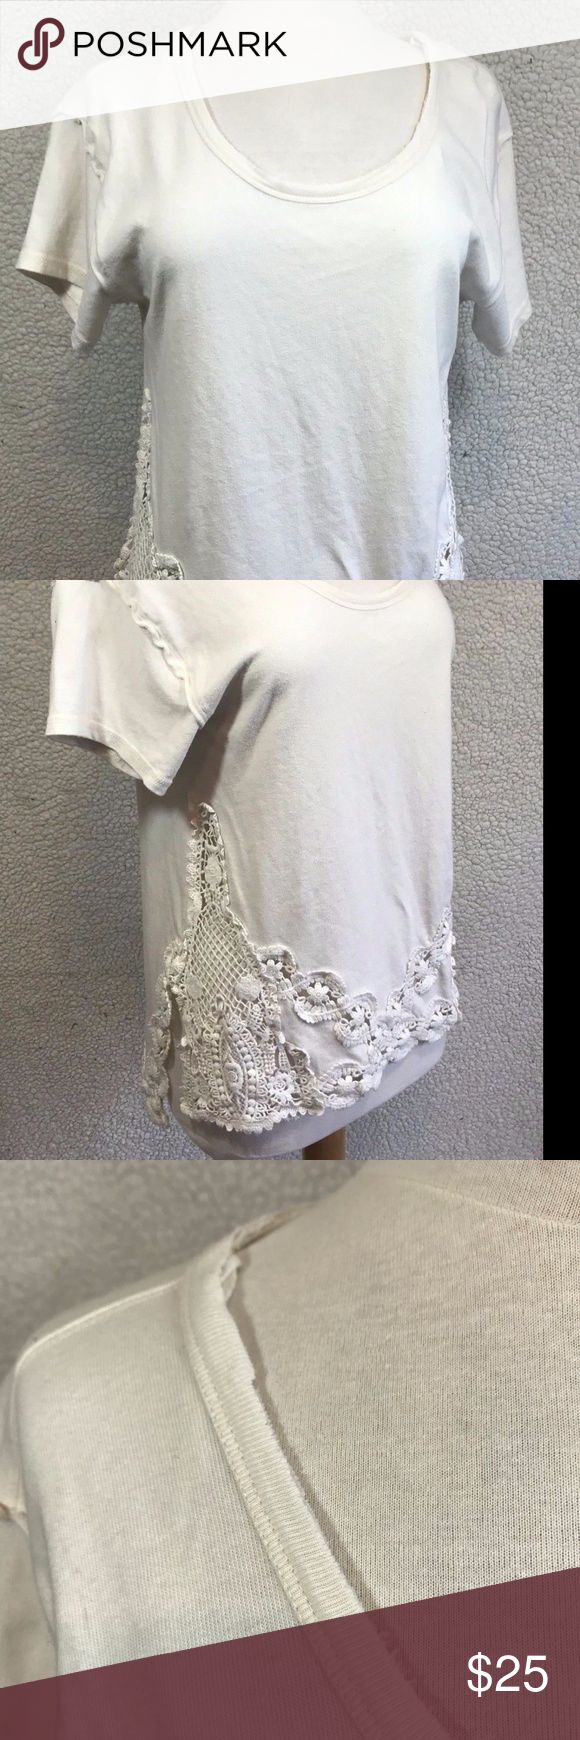 """Free People Women's Crochet Tunic Top Size XS Free People Women's Tunic Top Size XS White Short Sleeve Crochet Shirt. No Rips, Stains or holes. Smoke Free Home.  Fabric: 100% Cotton Approximate Measurements:  Length: 26"""" inches Chest (laying Flat underarm to underarm) : 19.5"""" inches Free People Tops Tunics"""